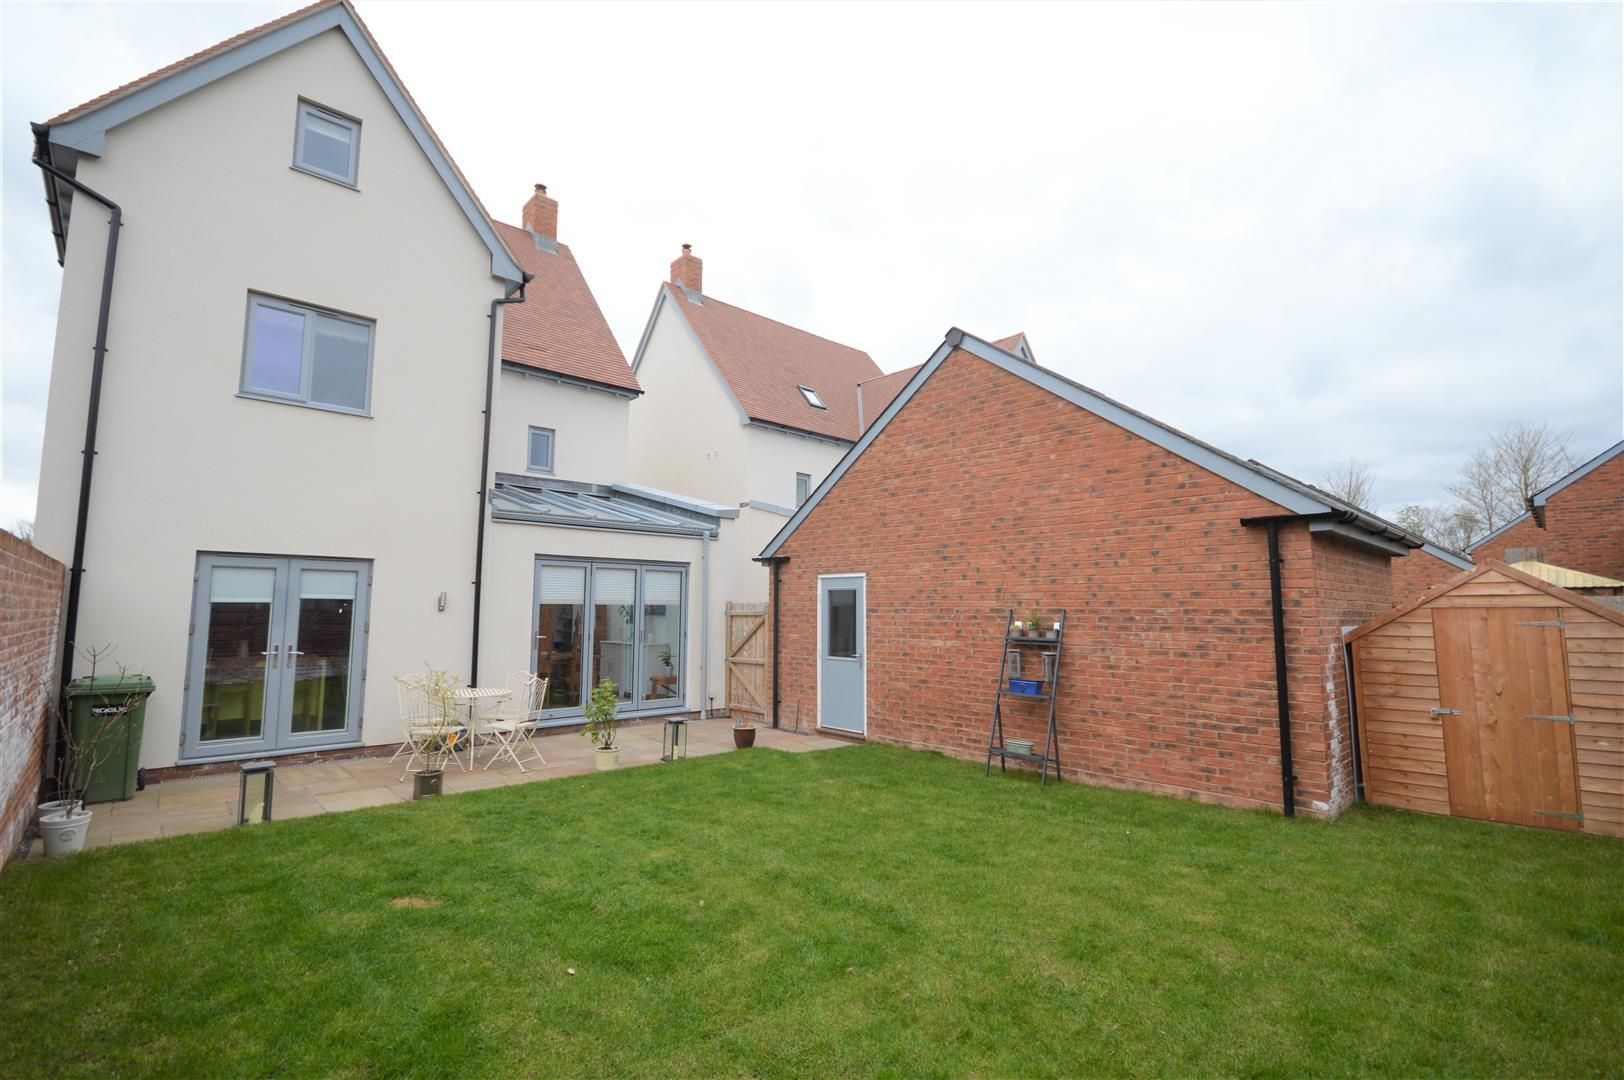 4 bed detached for sale in Weobley 22